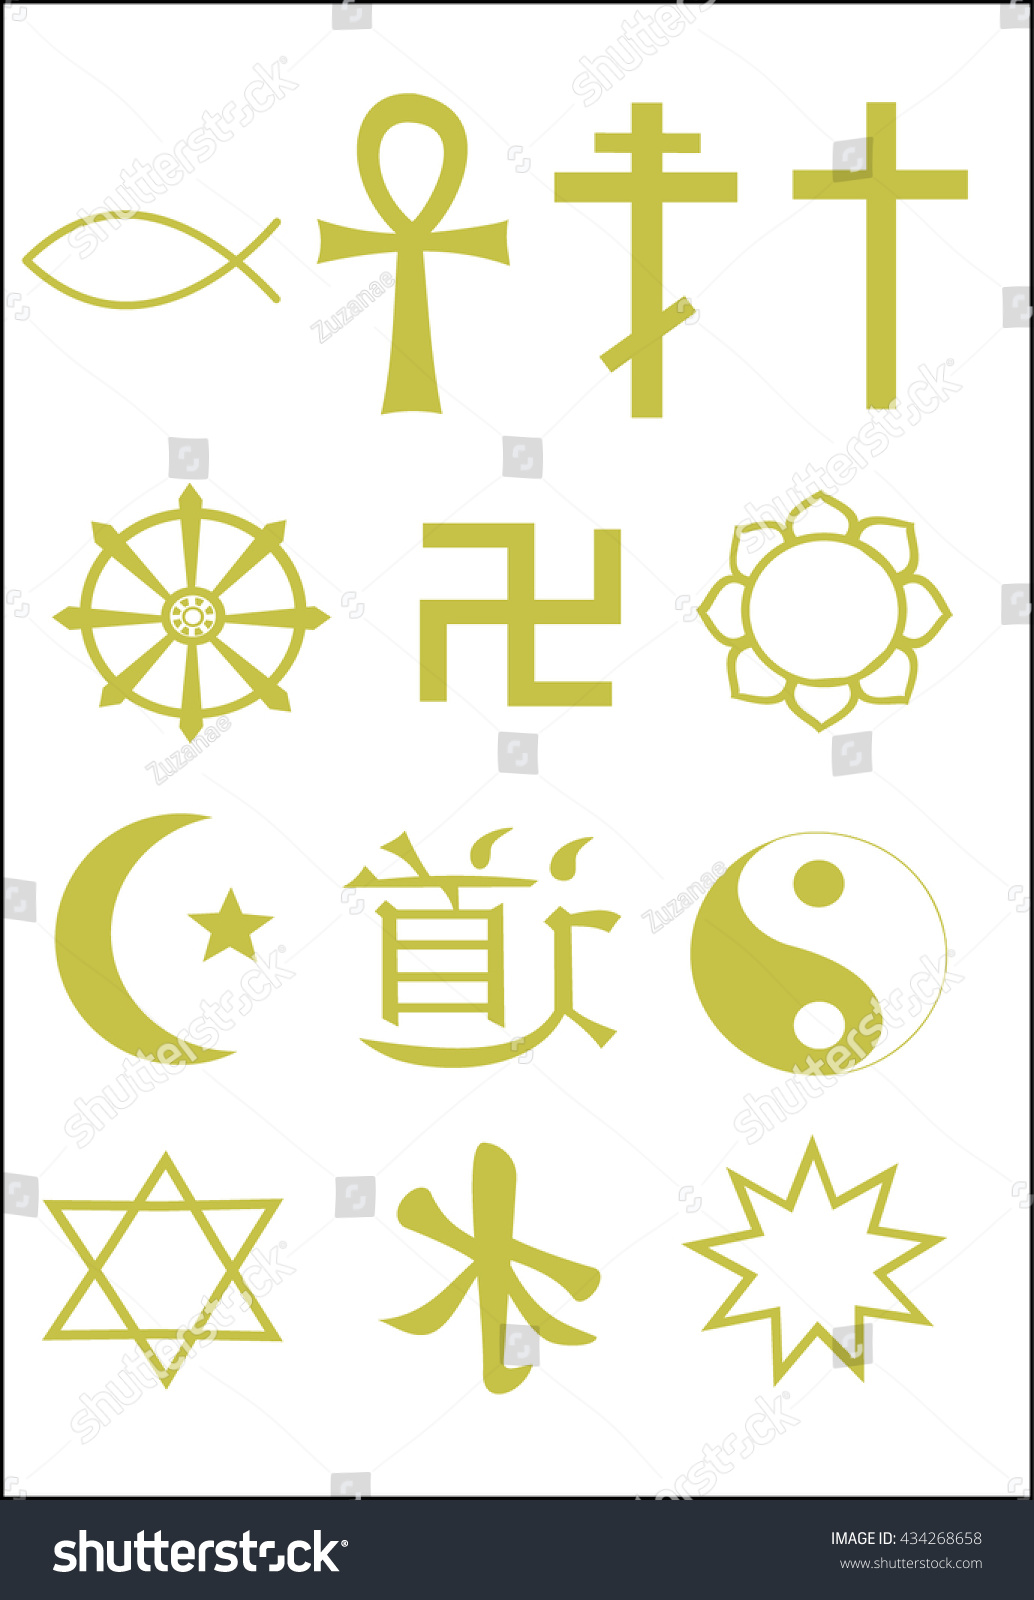 Symbols World Religions Golden Color Christianity Stock Vector